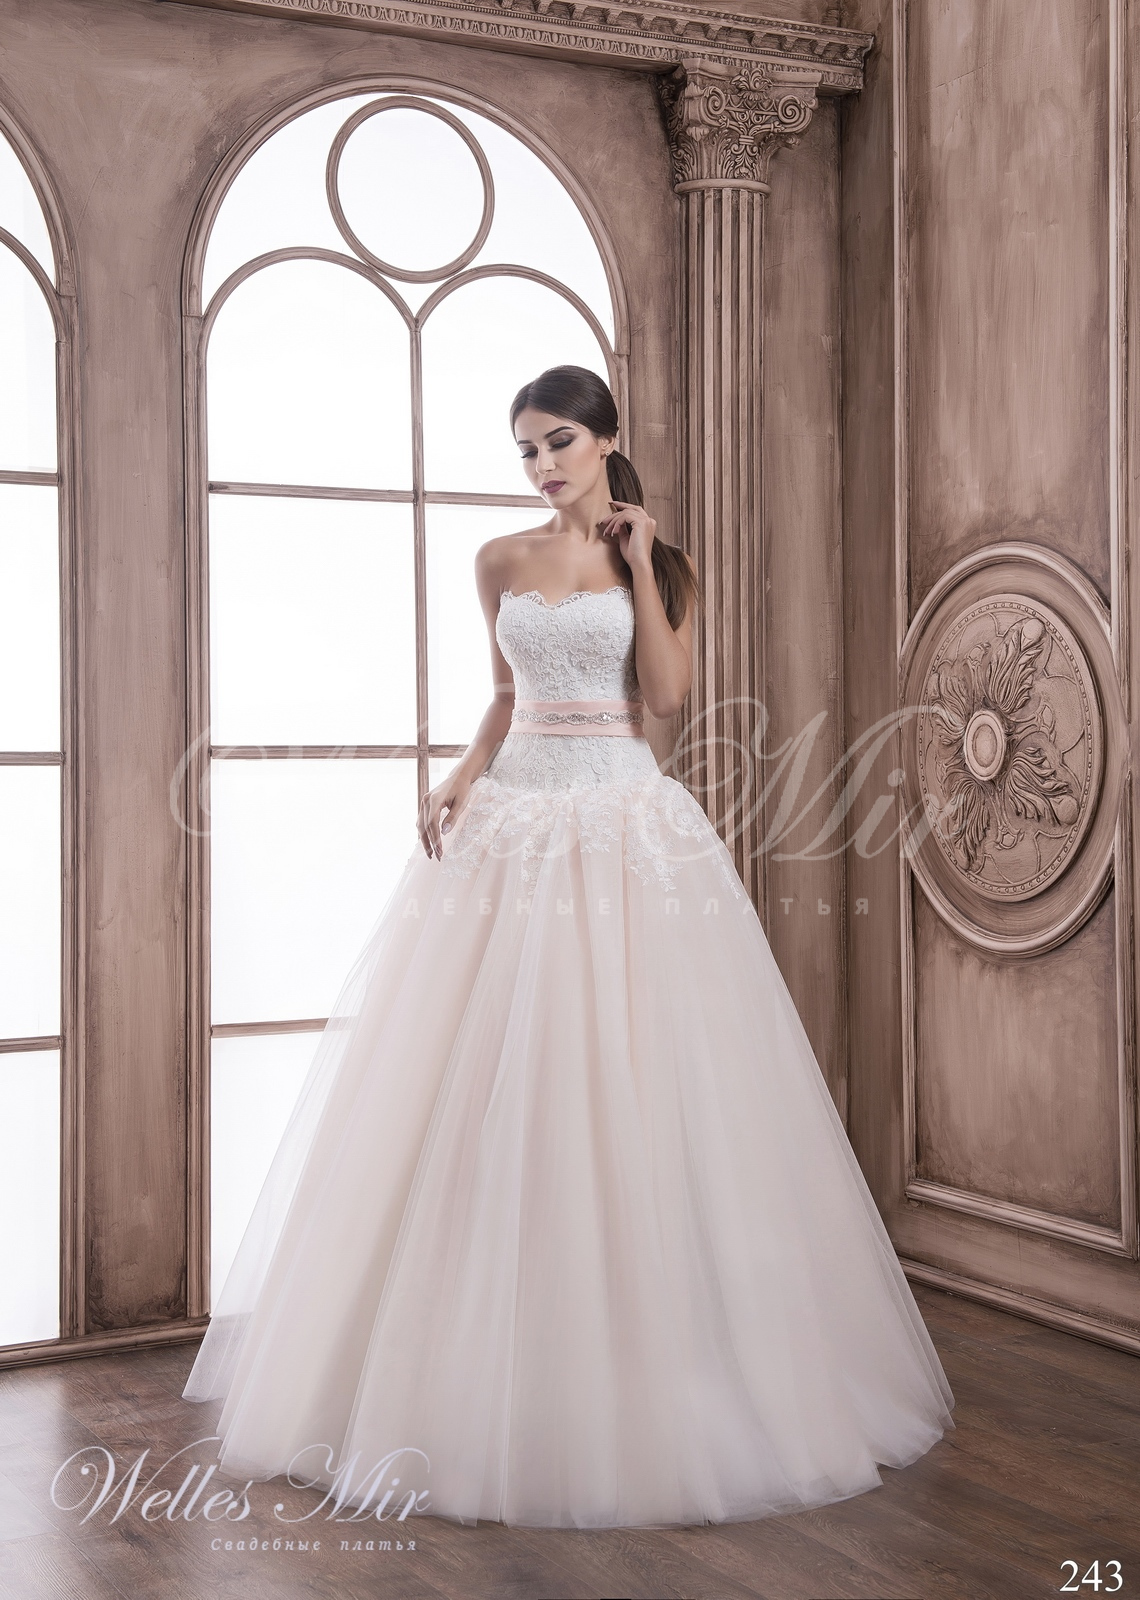 Wedding dresses 243